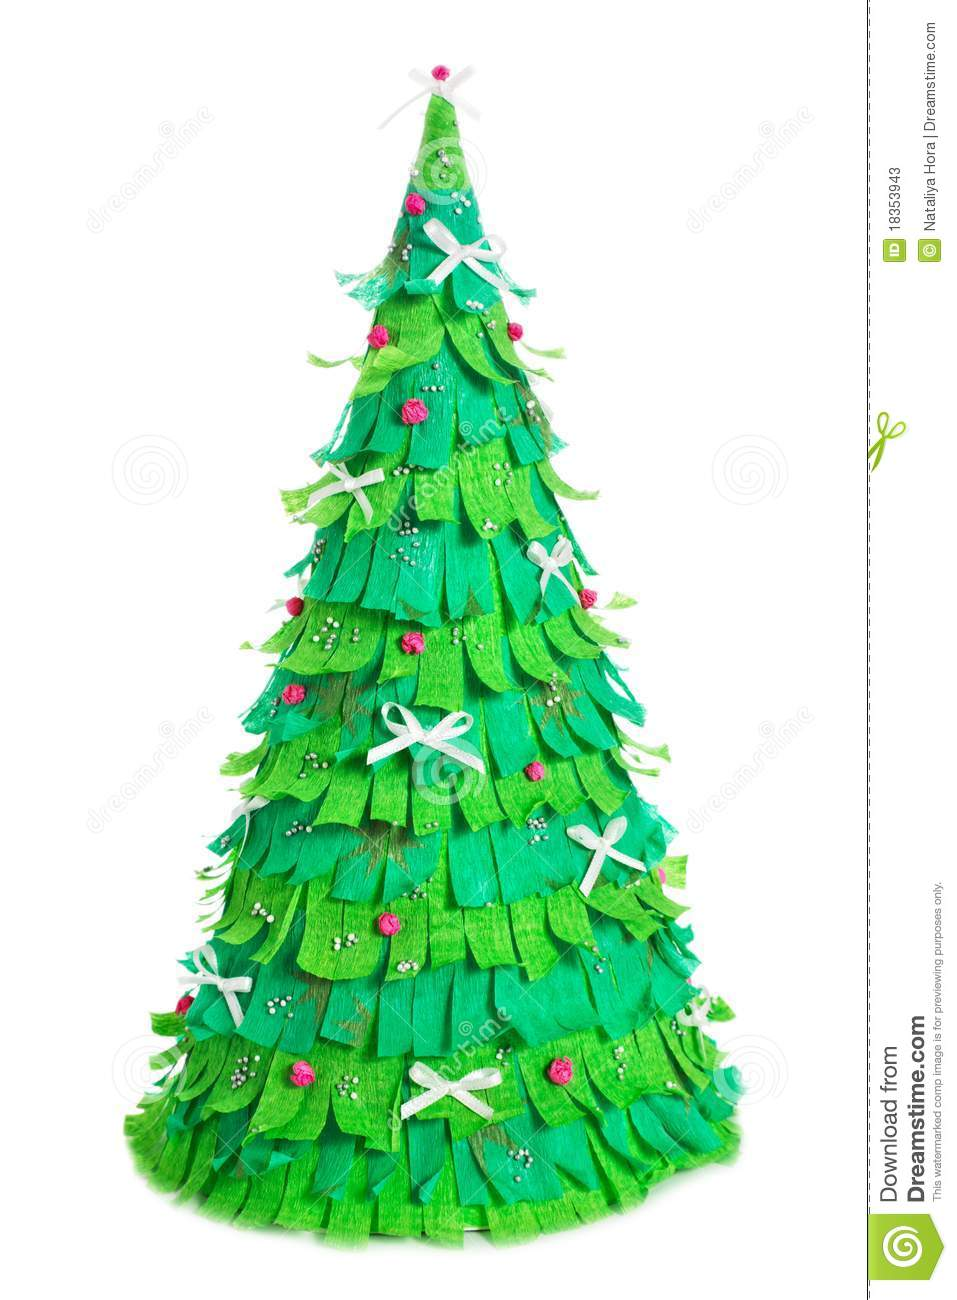 essay of christmas tree Christmas was one of the most festival times of the year for me it provides a reason for my family to reconnect and the christmas tree is a symbol of the.